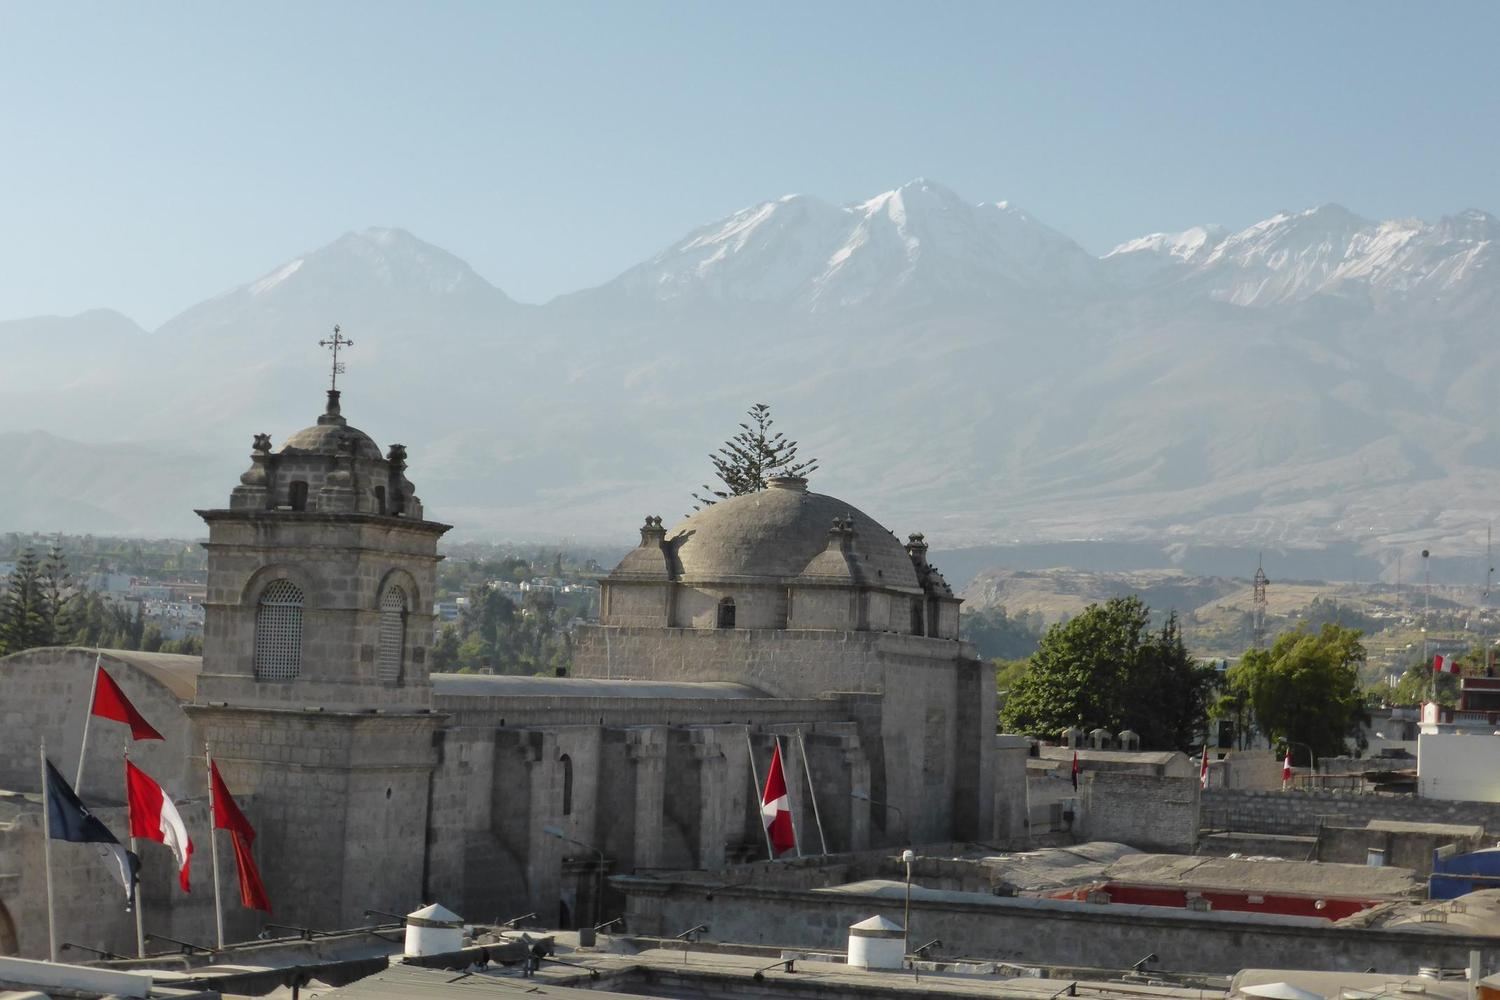 Arequipa is famous for its mild climate and beautiful setting